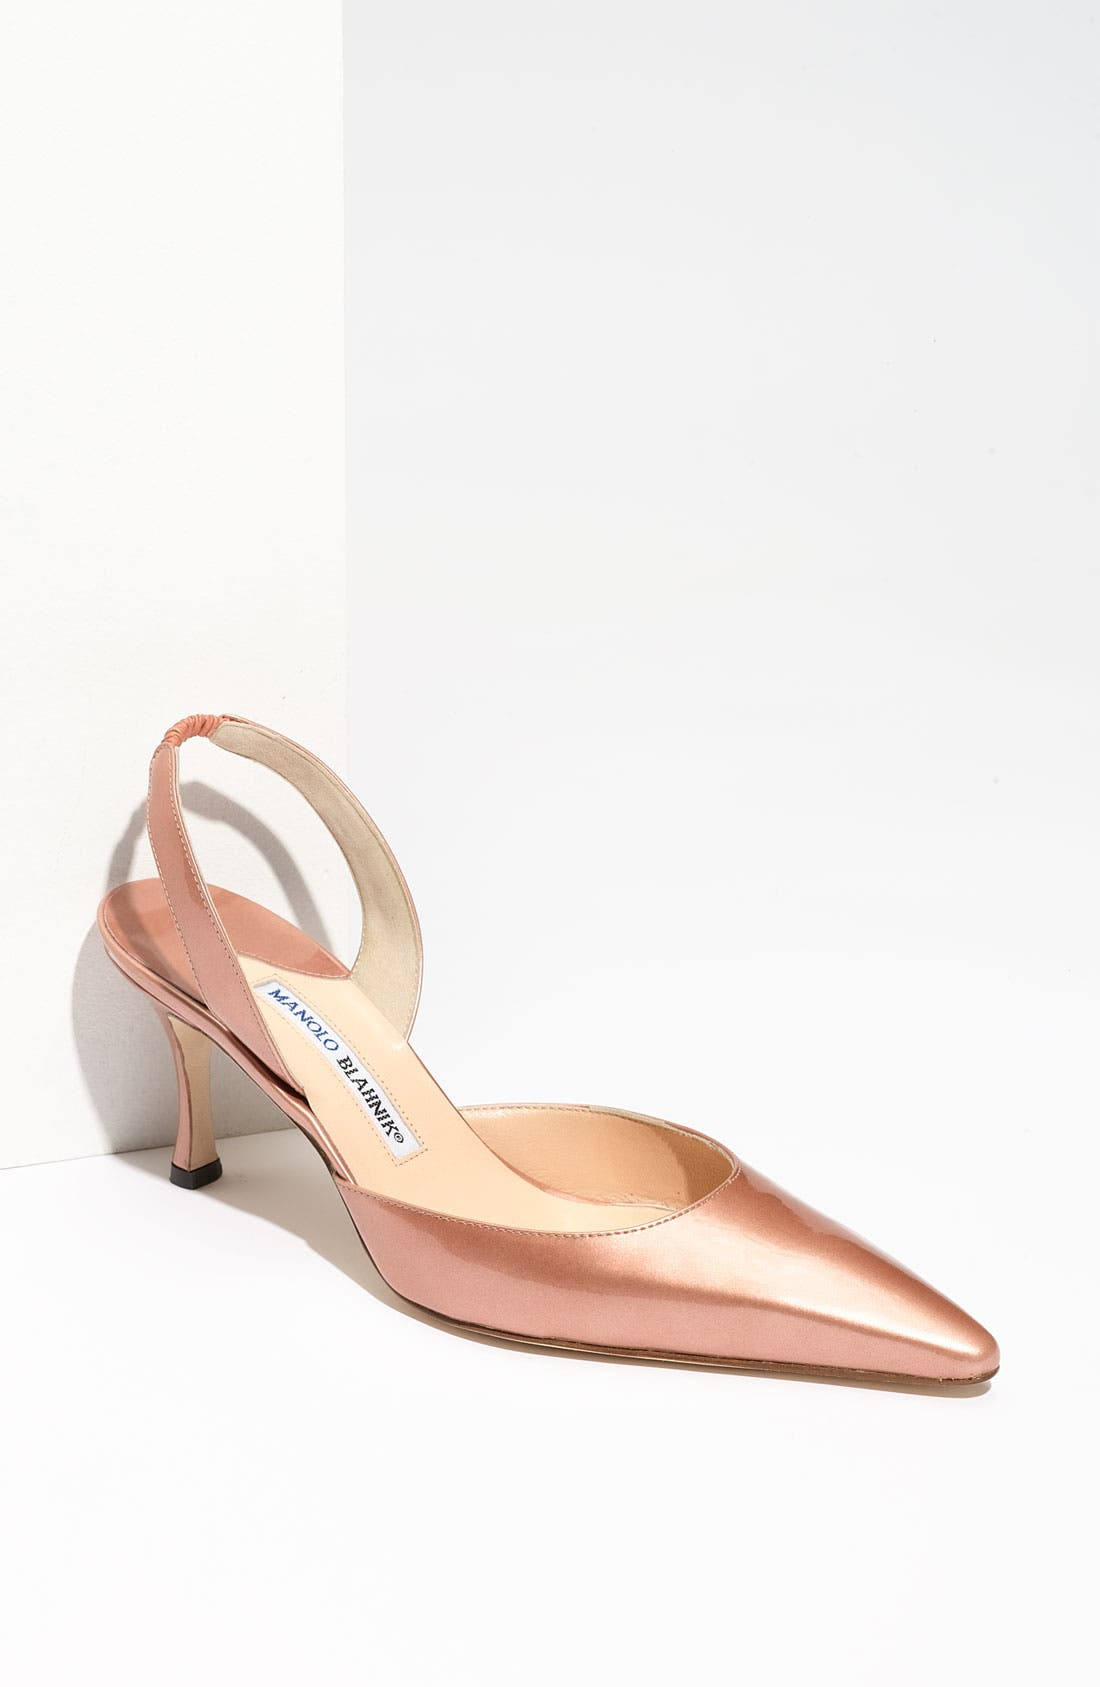 Alternate Image 1 Selected - Manolo Blahnik 'Carolyne' Slingback Pump